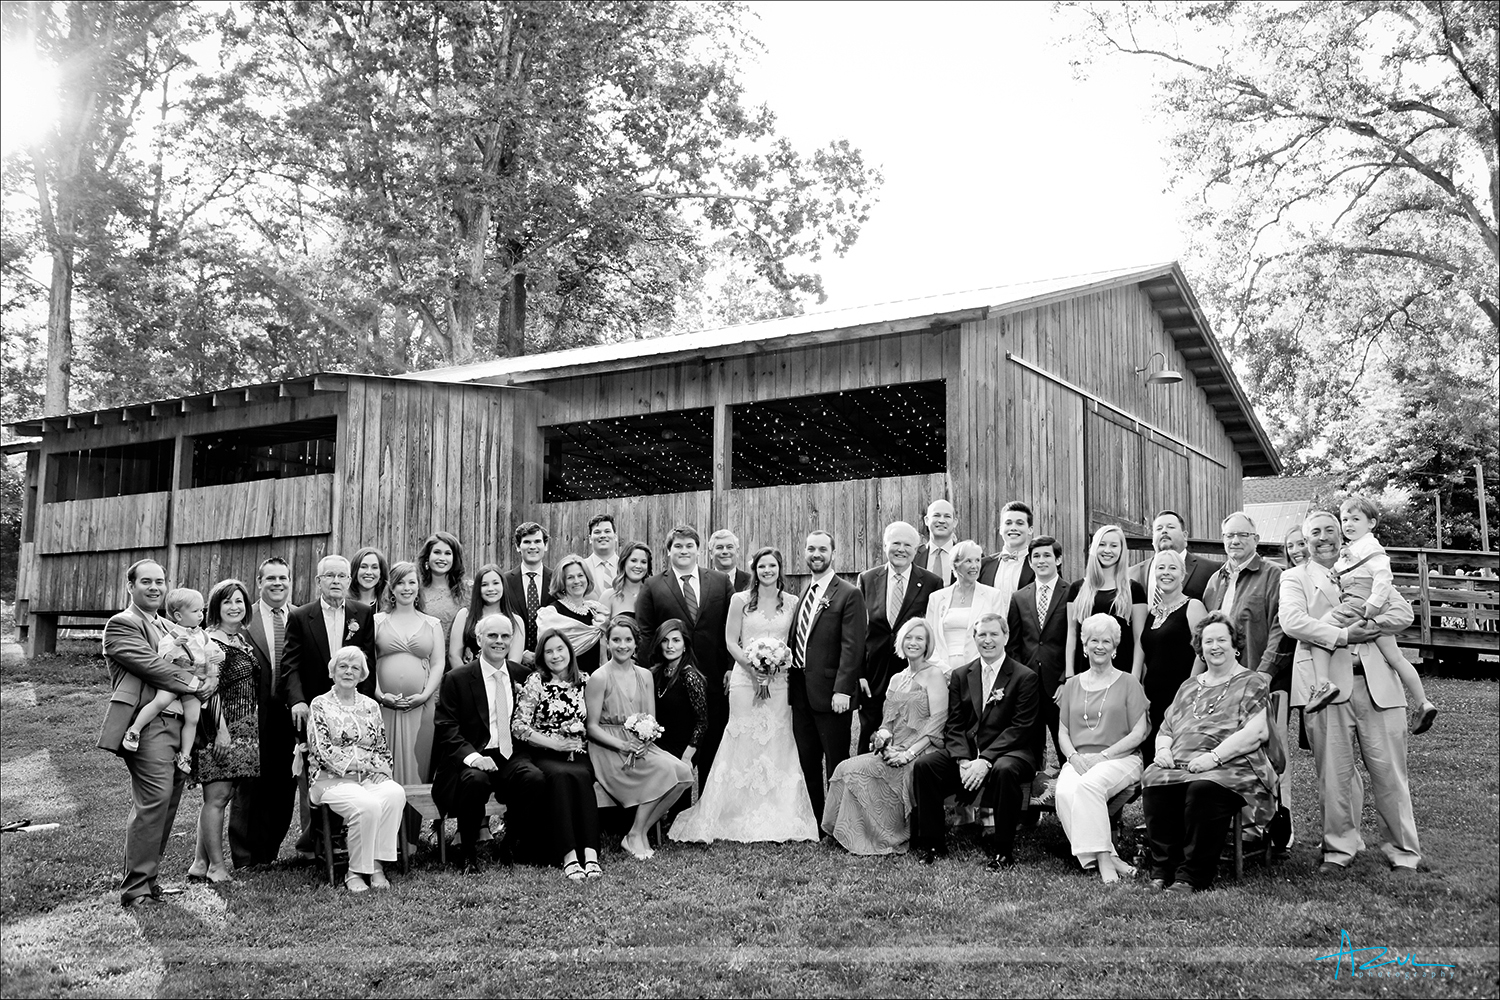 Classic wedding day family portrait photography in Chapel Hill, North Carolina